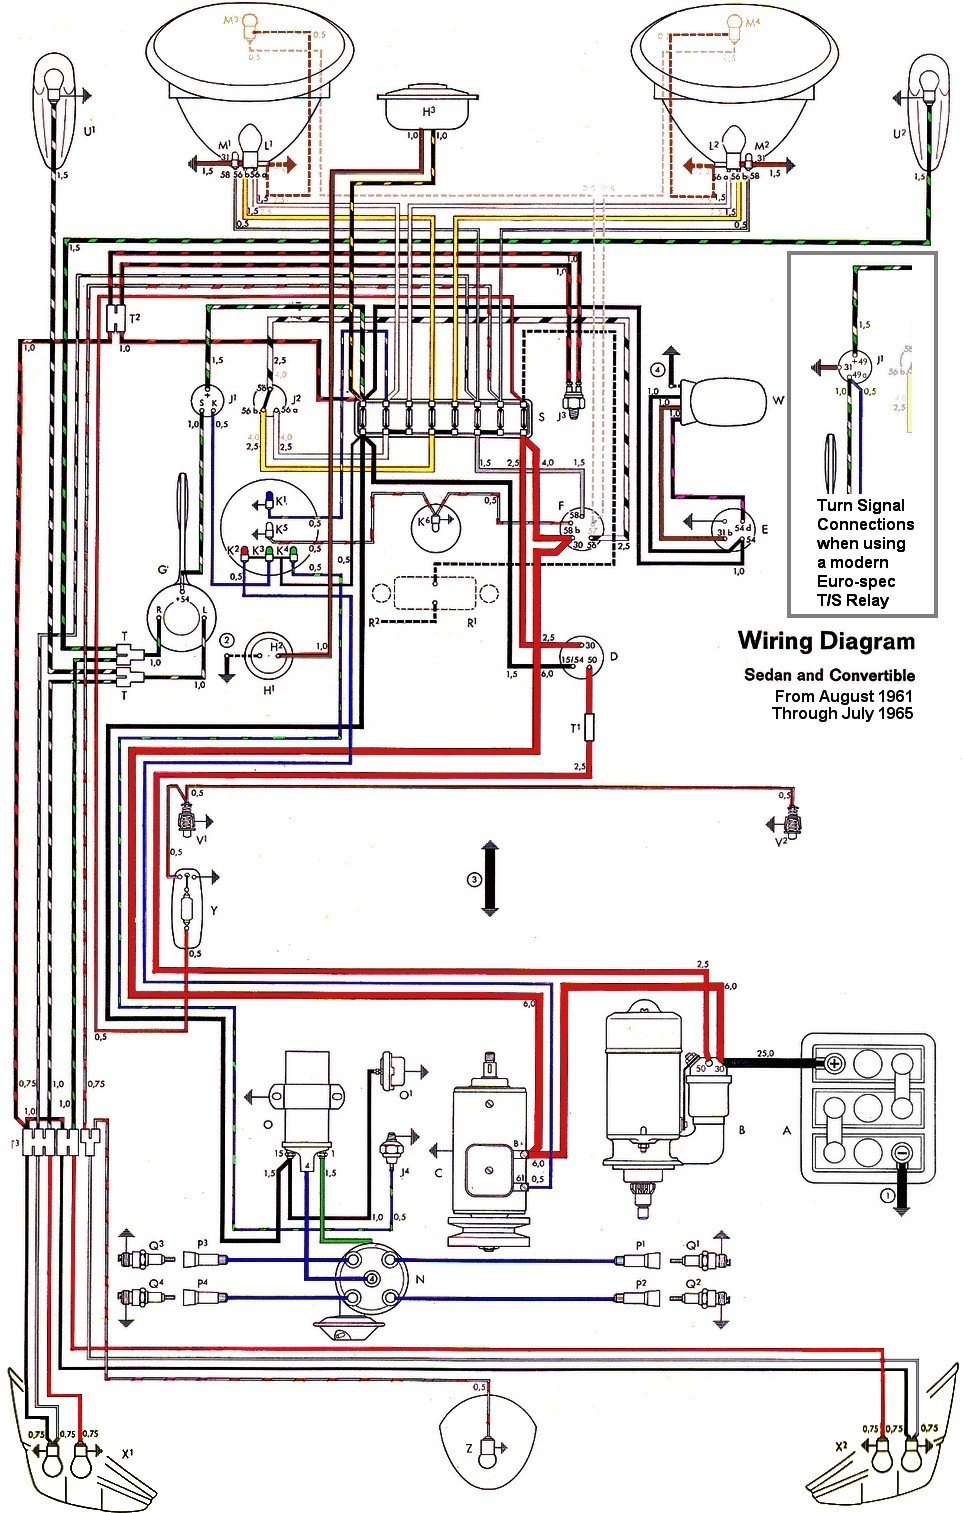 1970 Vw Relay Diagram Great Design Of Wiring Also Alternator On 77 Jeep Cj5 1972 Bus Free 1998 Beetle 2000 Jetta